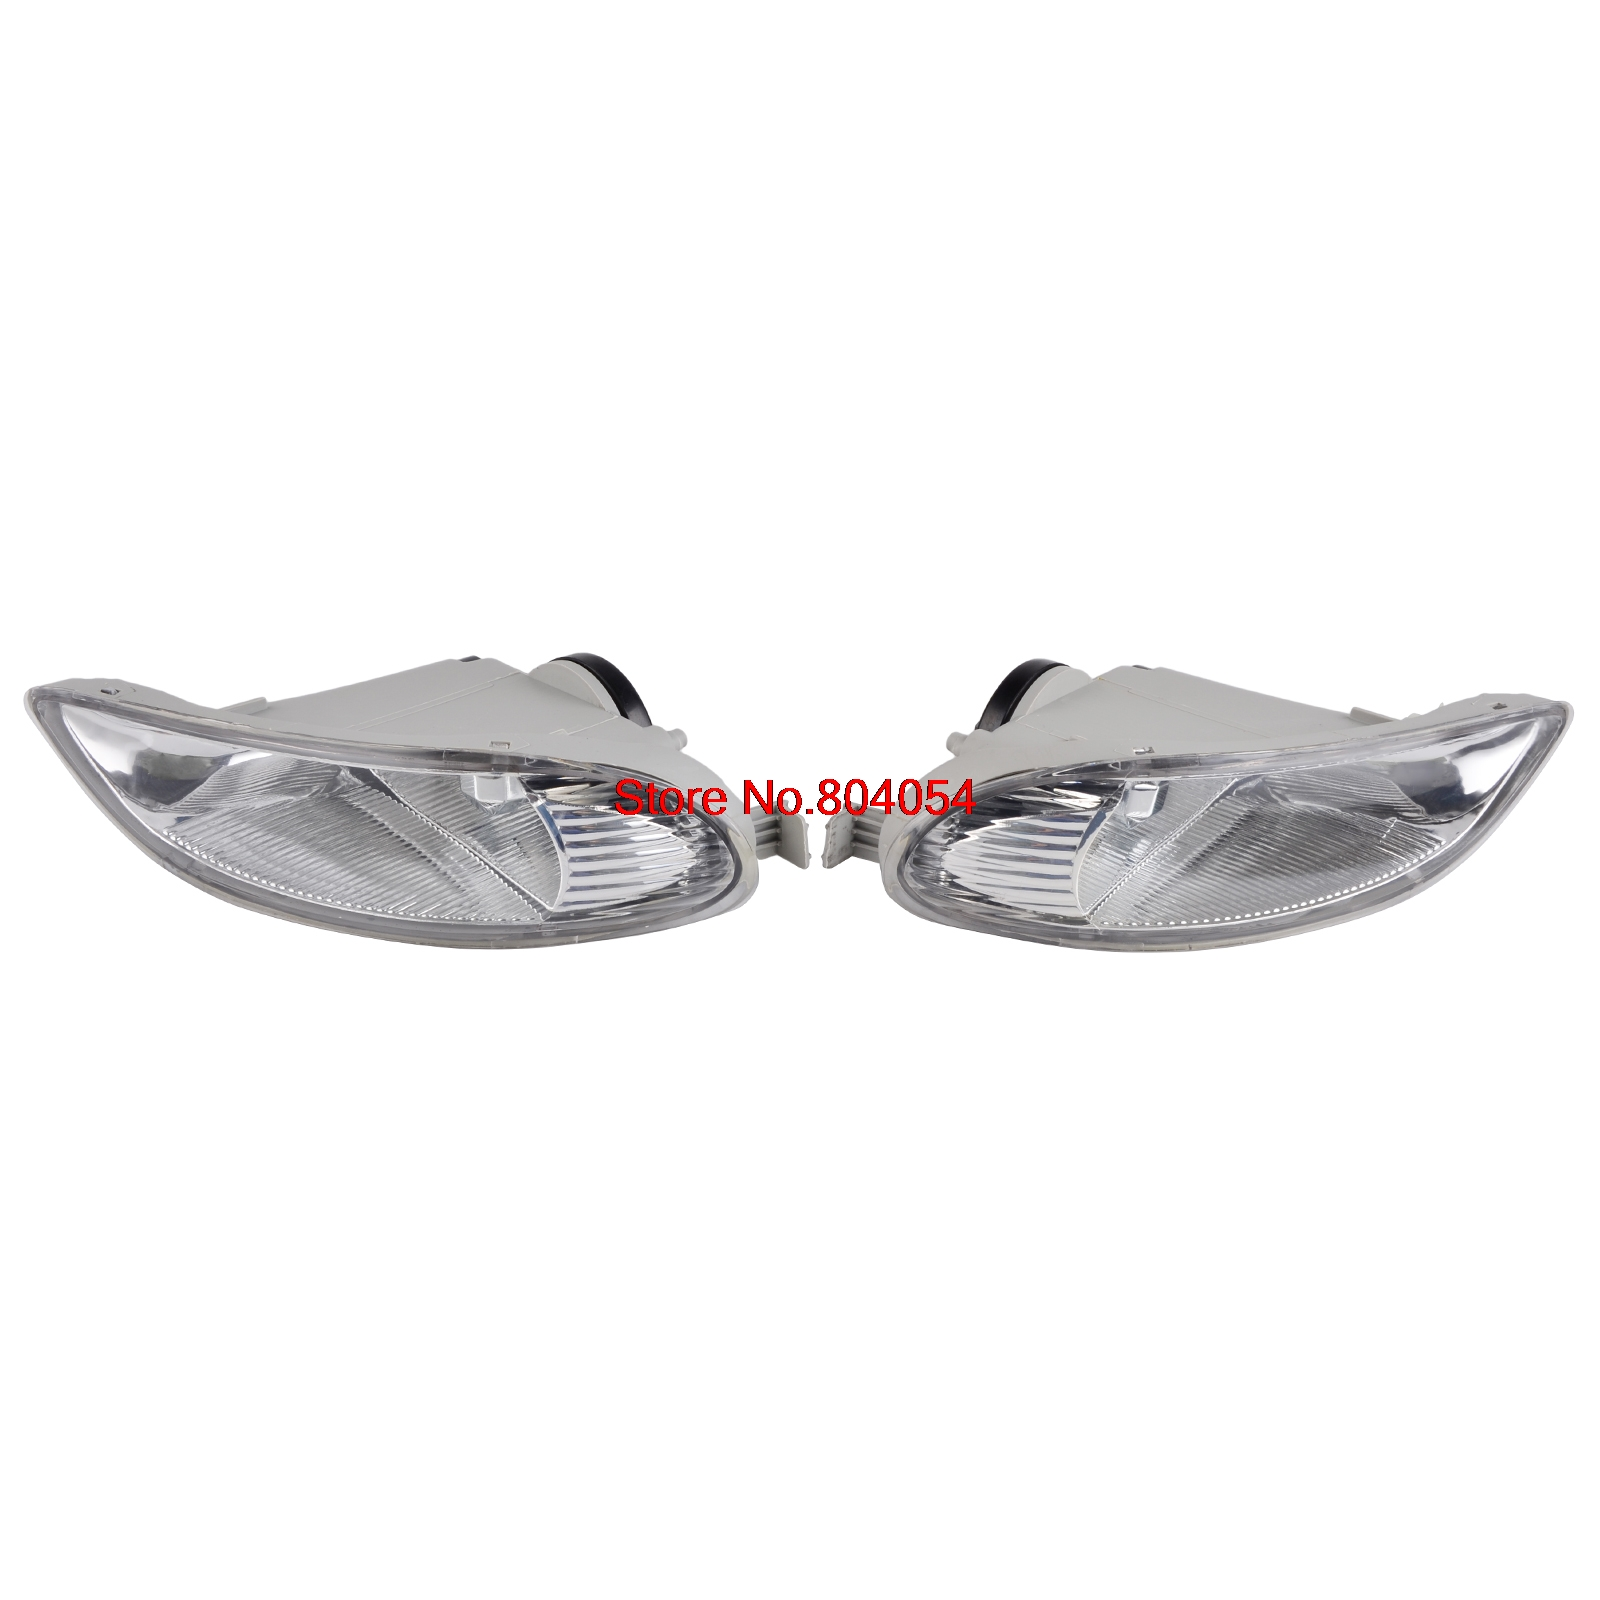 NICECNC A Pair Car Bumper Fog Lights Front Lamps Left & Right For Toyota Corolla 2005-2008 Camry 2002-2004 Solara 2002 2003 2pcs pair front lower bumper fog light fog lamps left